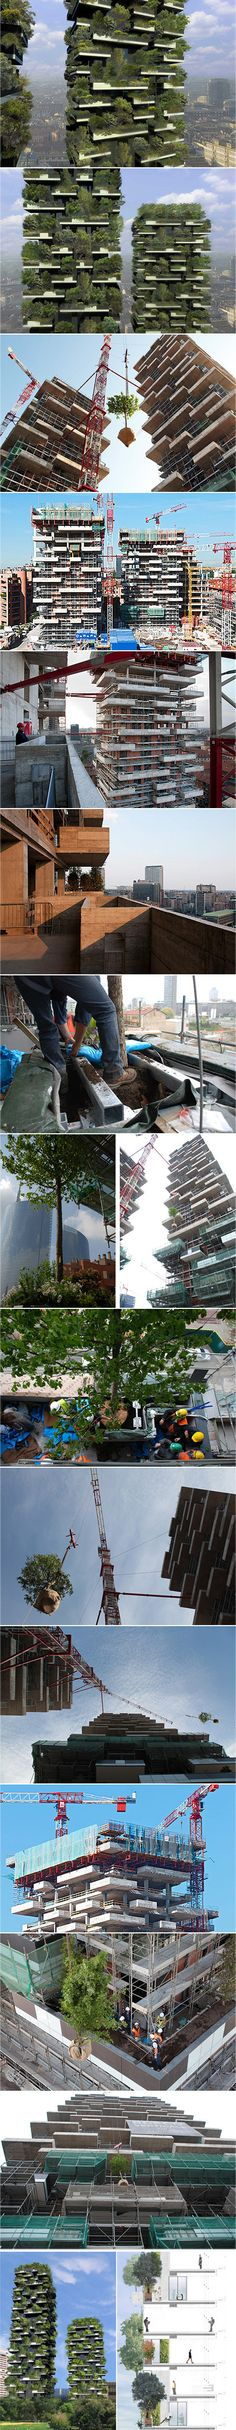 Designed by Boeri Studio (Stefano Boeri, Gianandrea Barreca and Giovanni La Varra), Bosco Verticale is a towering 27-story structure, currently under construction in Milan, Italy. Once complete, the tower will be home to the world's first vertical forest.